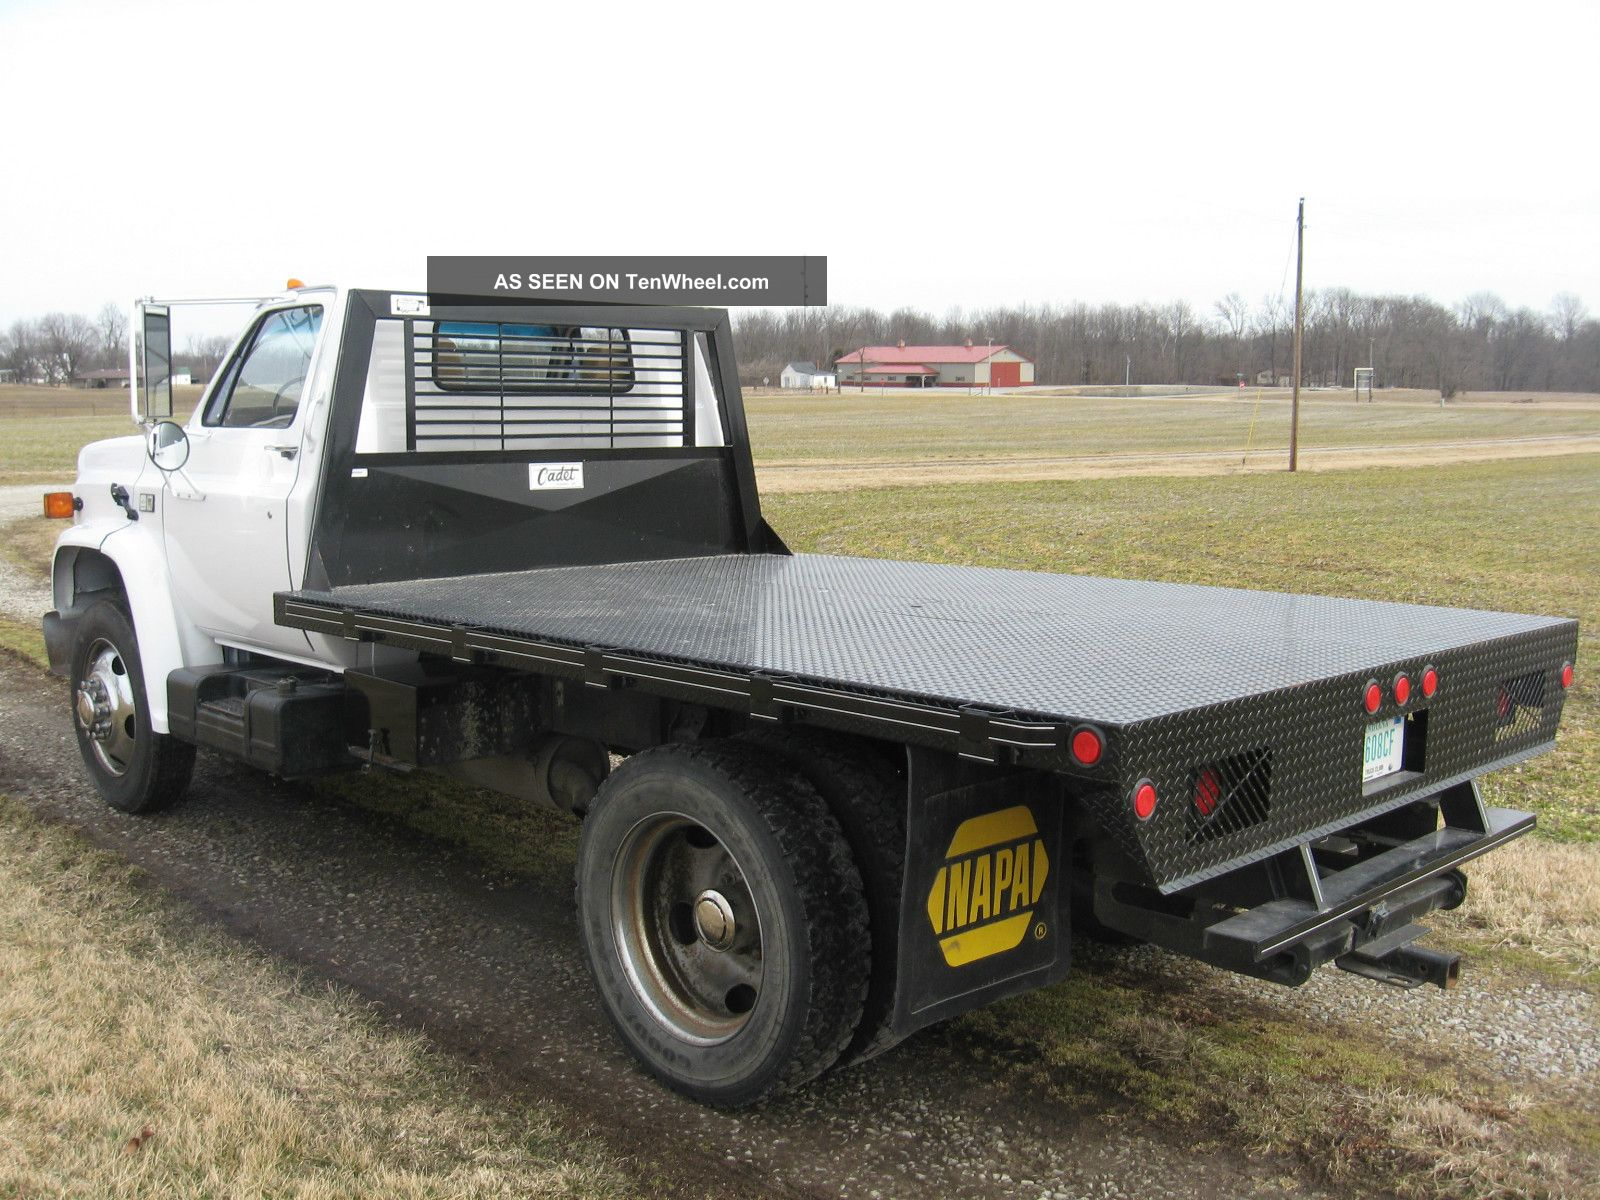 1988 chevrolet c70 flatbed truck 8 2 liter turbo diesel w. Black Bedroom Furniture Sets. Home Design Ideas